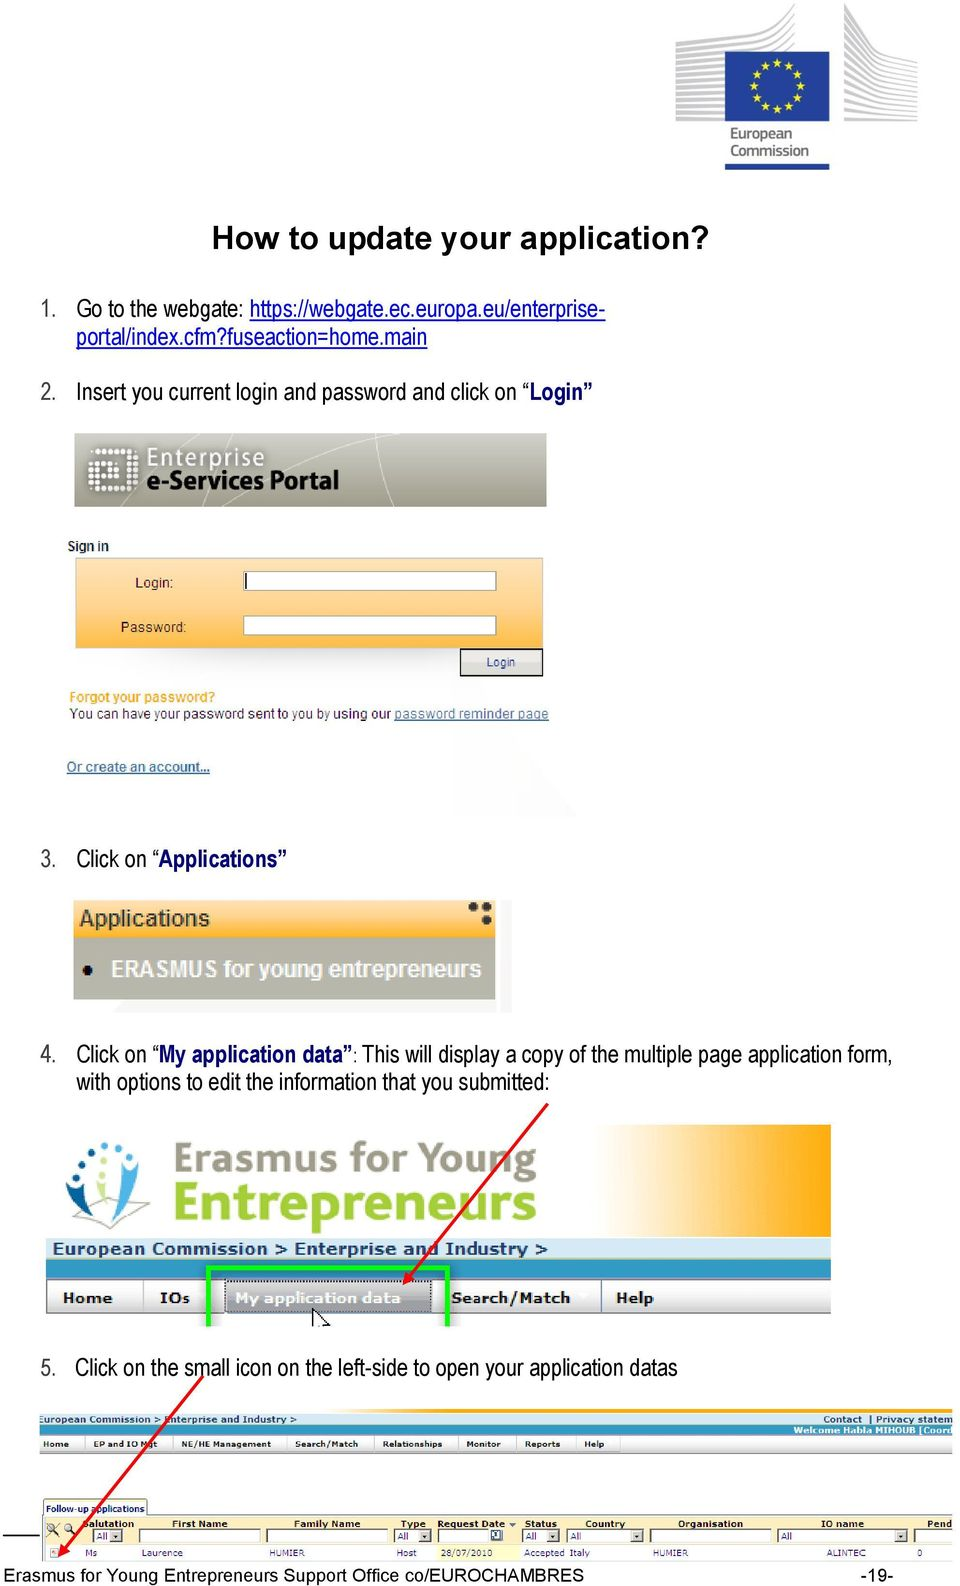 Click on My application data : This will display a copy of the multiple page application form, with options to edit the